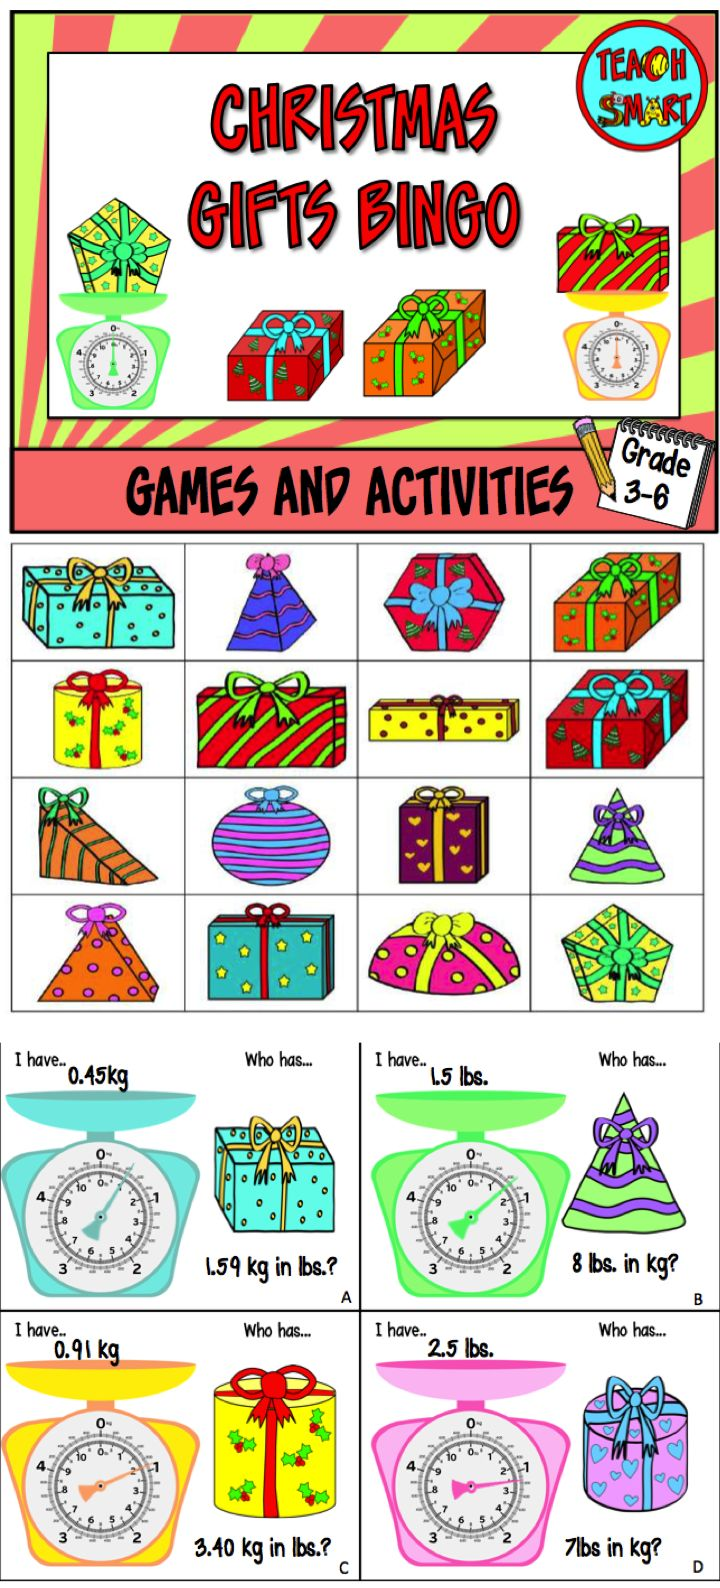 worksheet Shape Fractions the 25 best fractions of shapes ideas on pinterest 3d christmas gift bingo covers 2d measurement and conversion lbs kg fractions